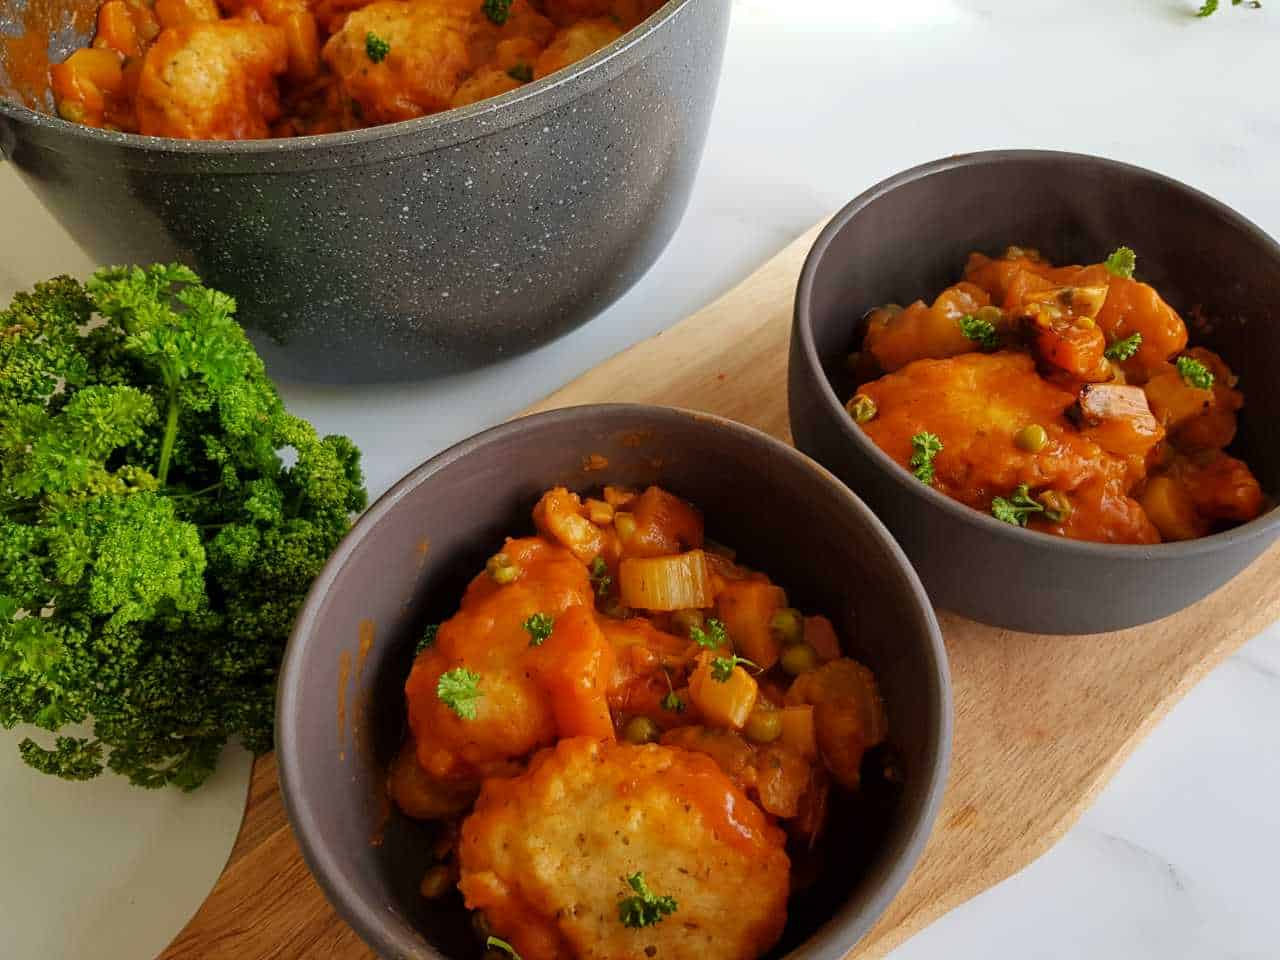 Vegetable stew with dumplings in gray bowls on a wooden chopping board.